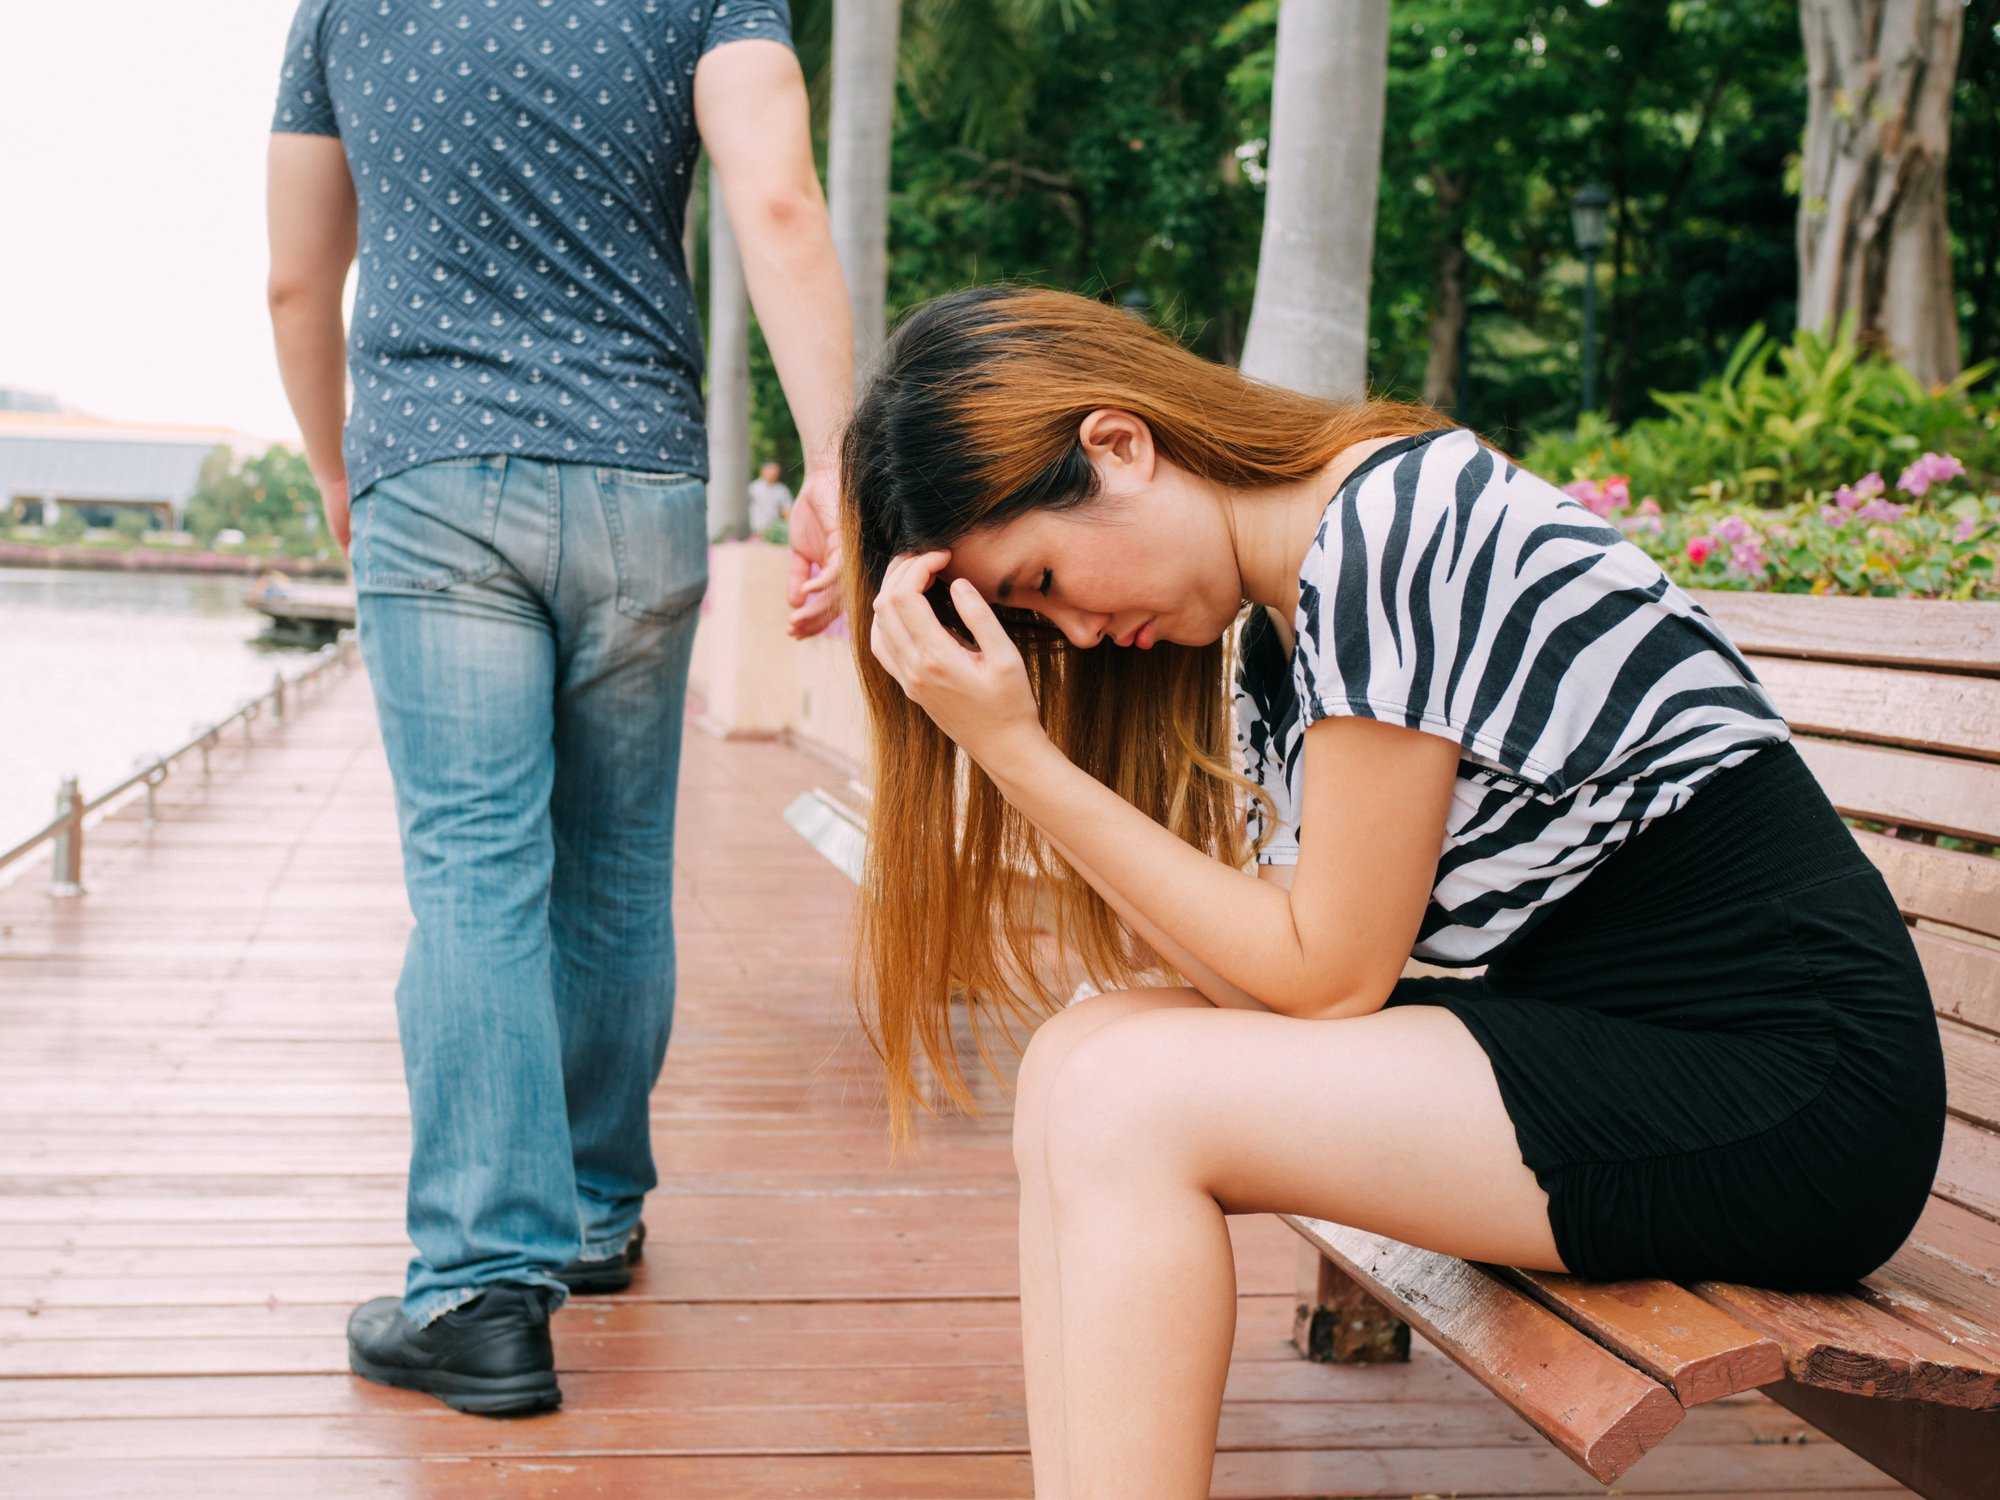 Boyfriend parts ways with his girlfriend, who is left alone to figure out what went wrong in their relationship   Photo: Getty Images